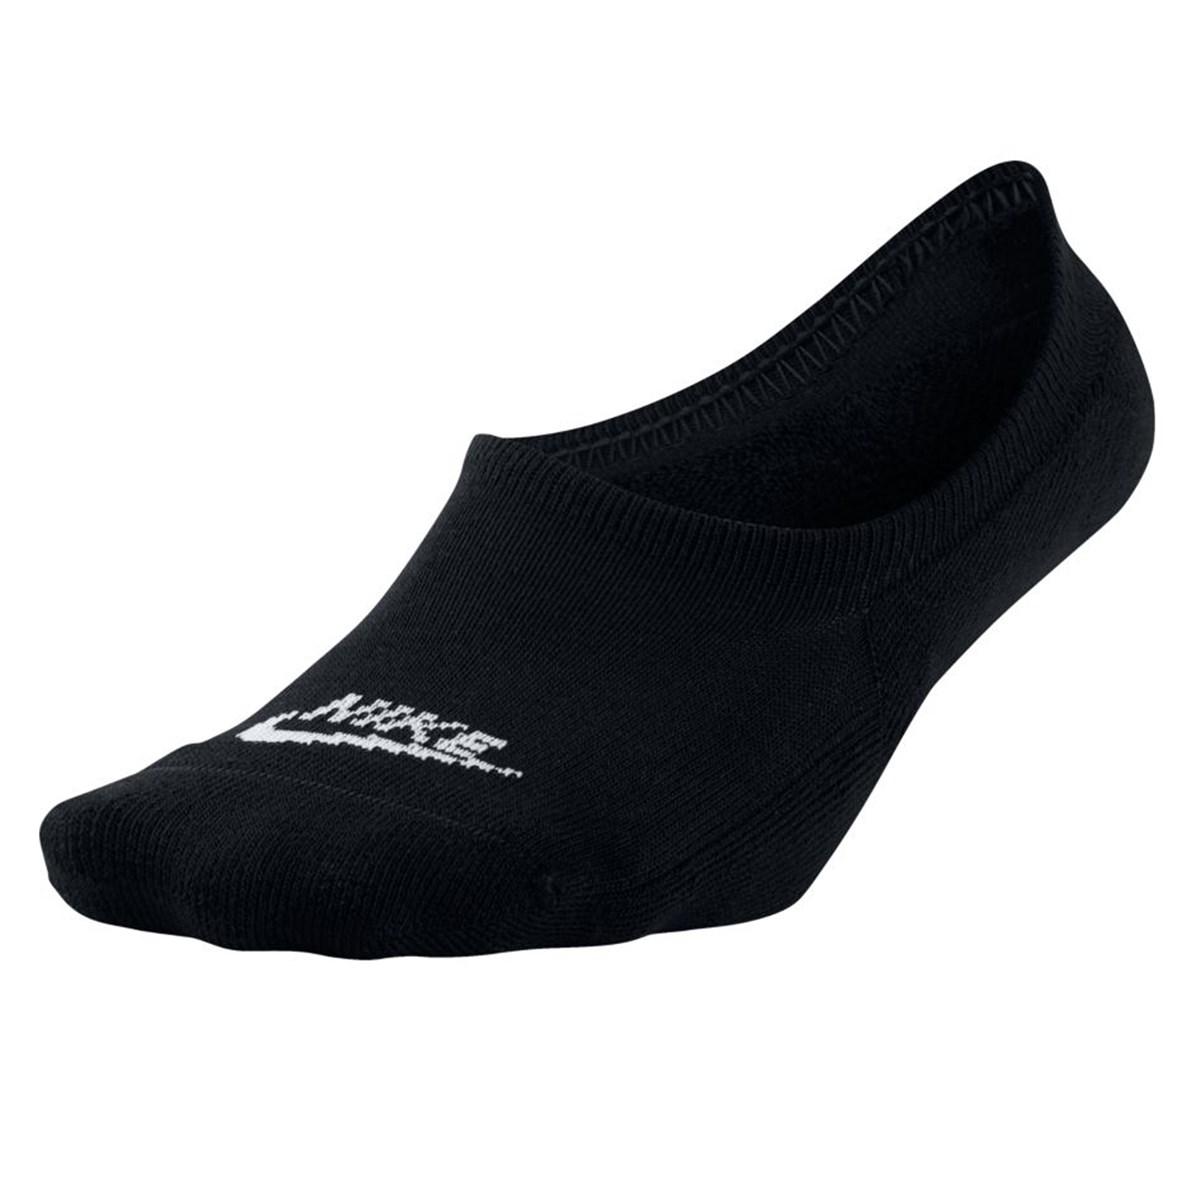 Women's No Show 3-Pack Black Socks